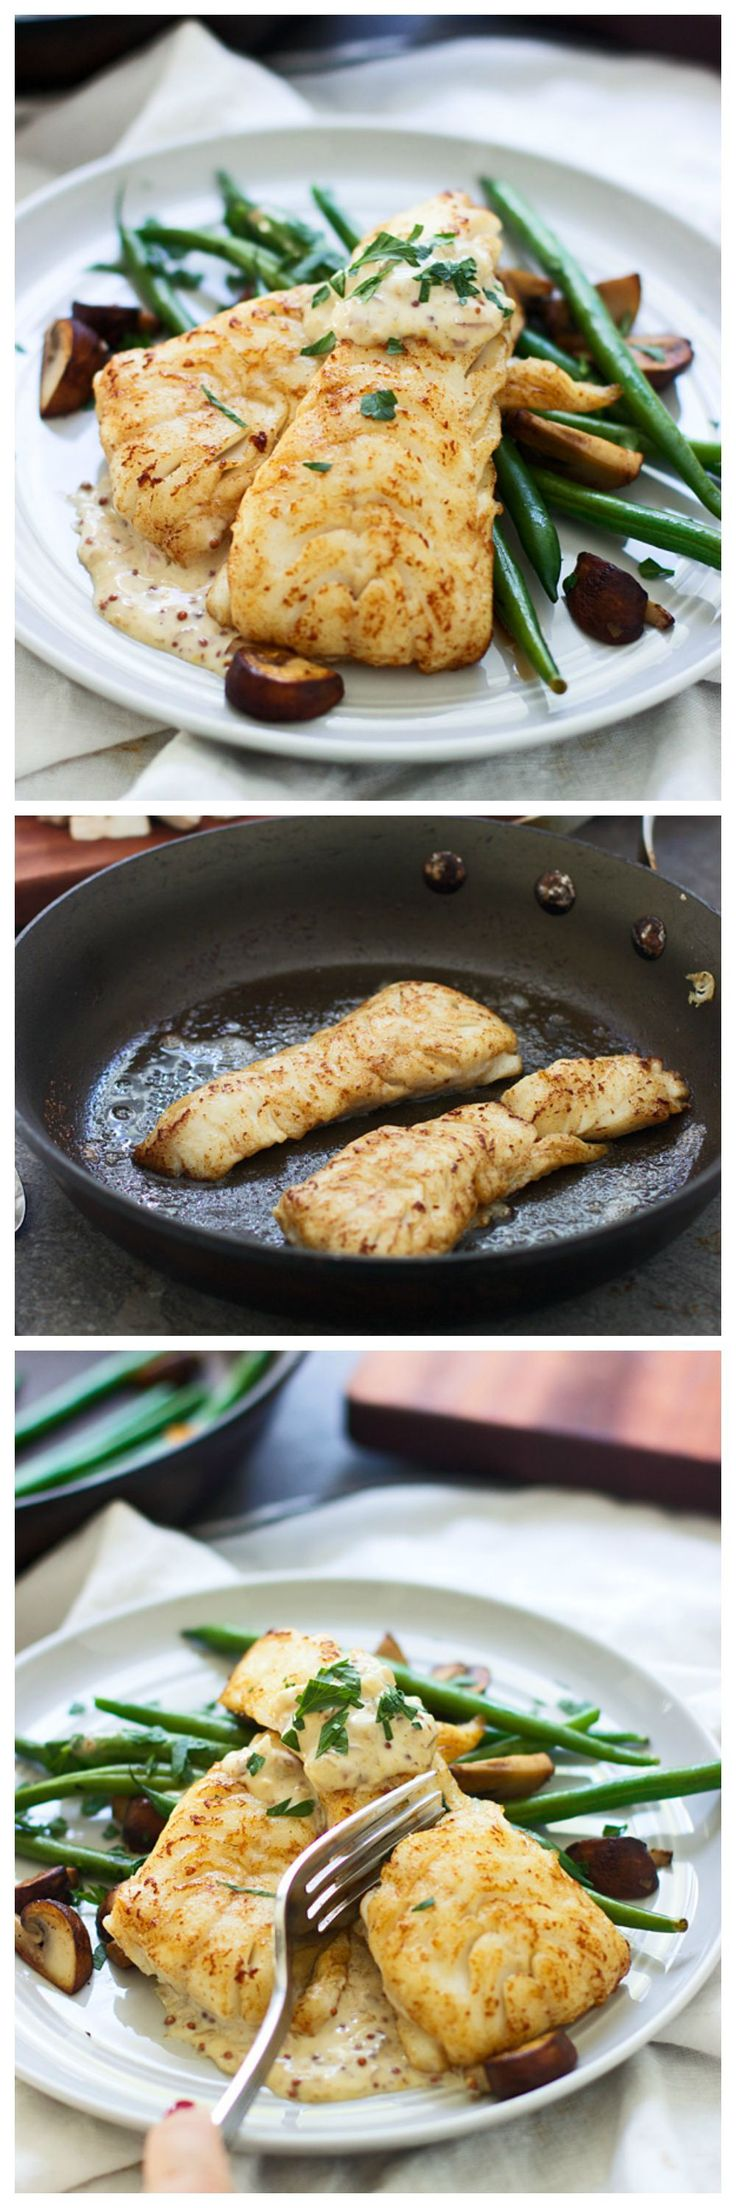 Brown Butter Seared Haddock with Mustard Cream Sauce - I promise, this will be your new favorite seafood dish! Super easy, minimal ingredients and comes together in under 30 minutes.